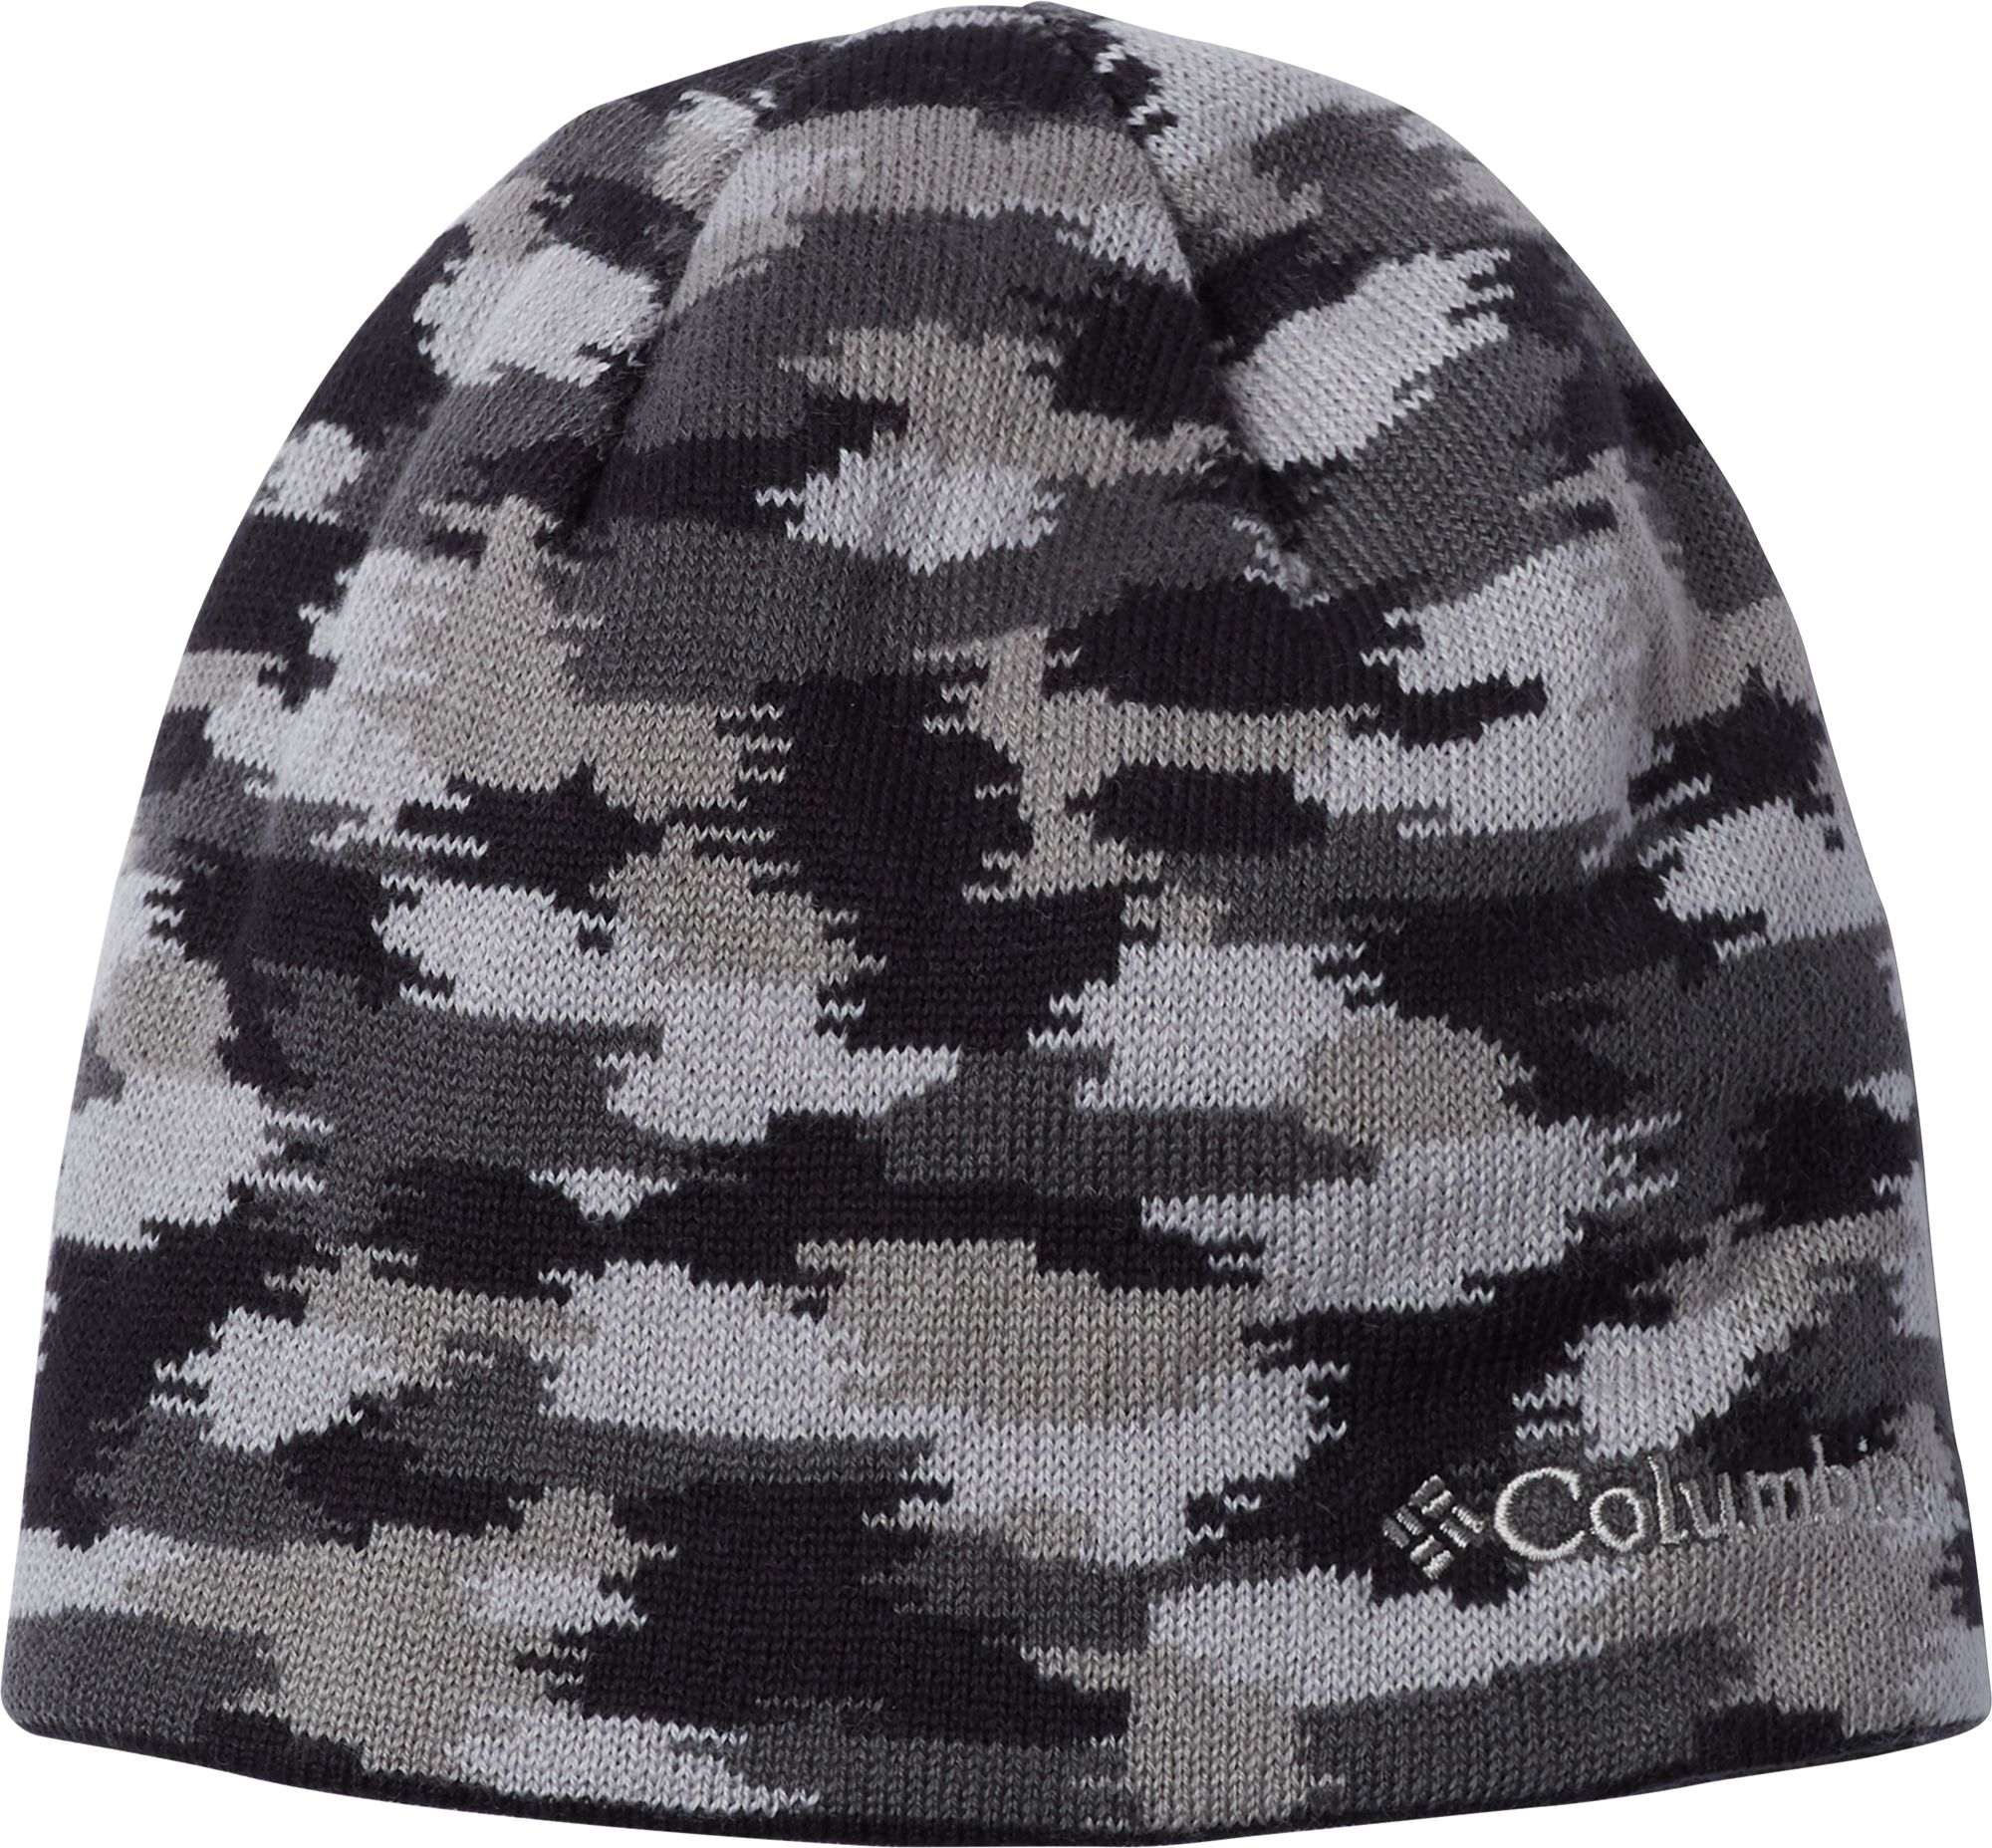 Columbia Youth/Toddler Urbanization Mix Beanie, Size: L/XL, Black/Slate Grey Camo thumbnail